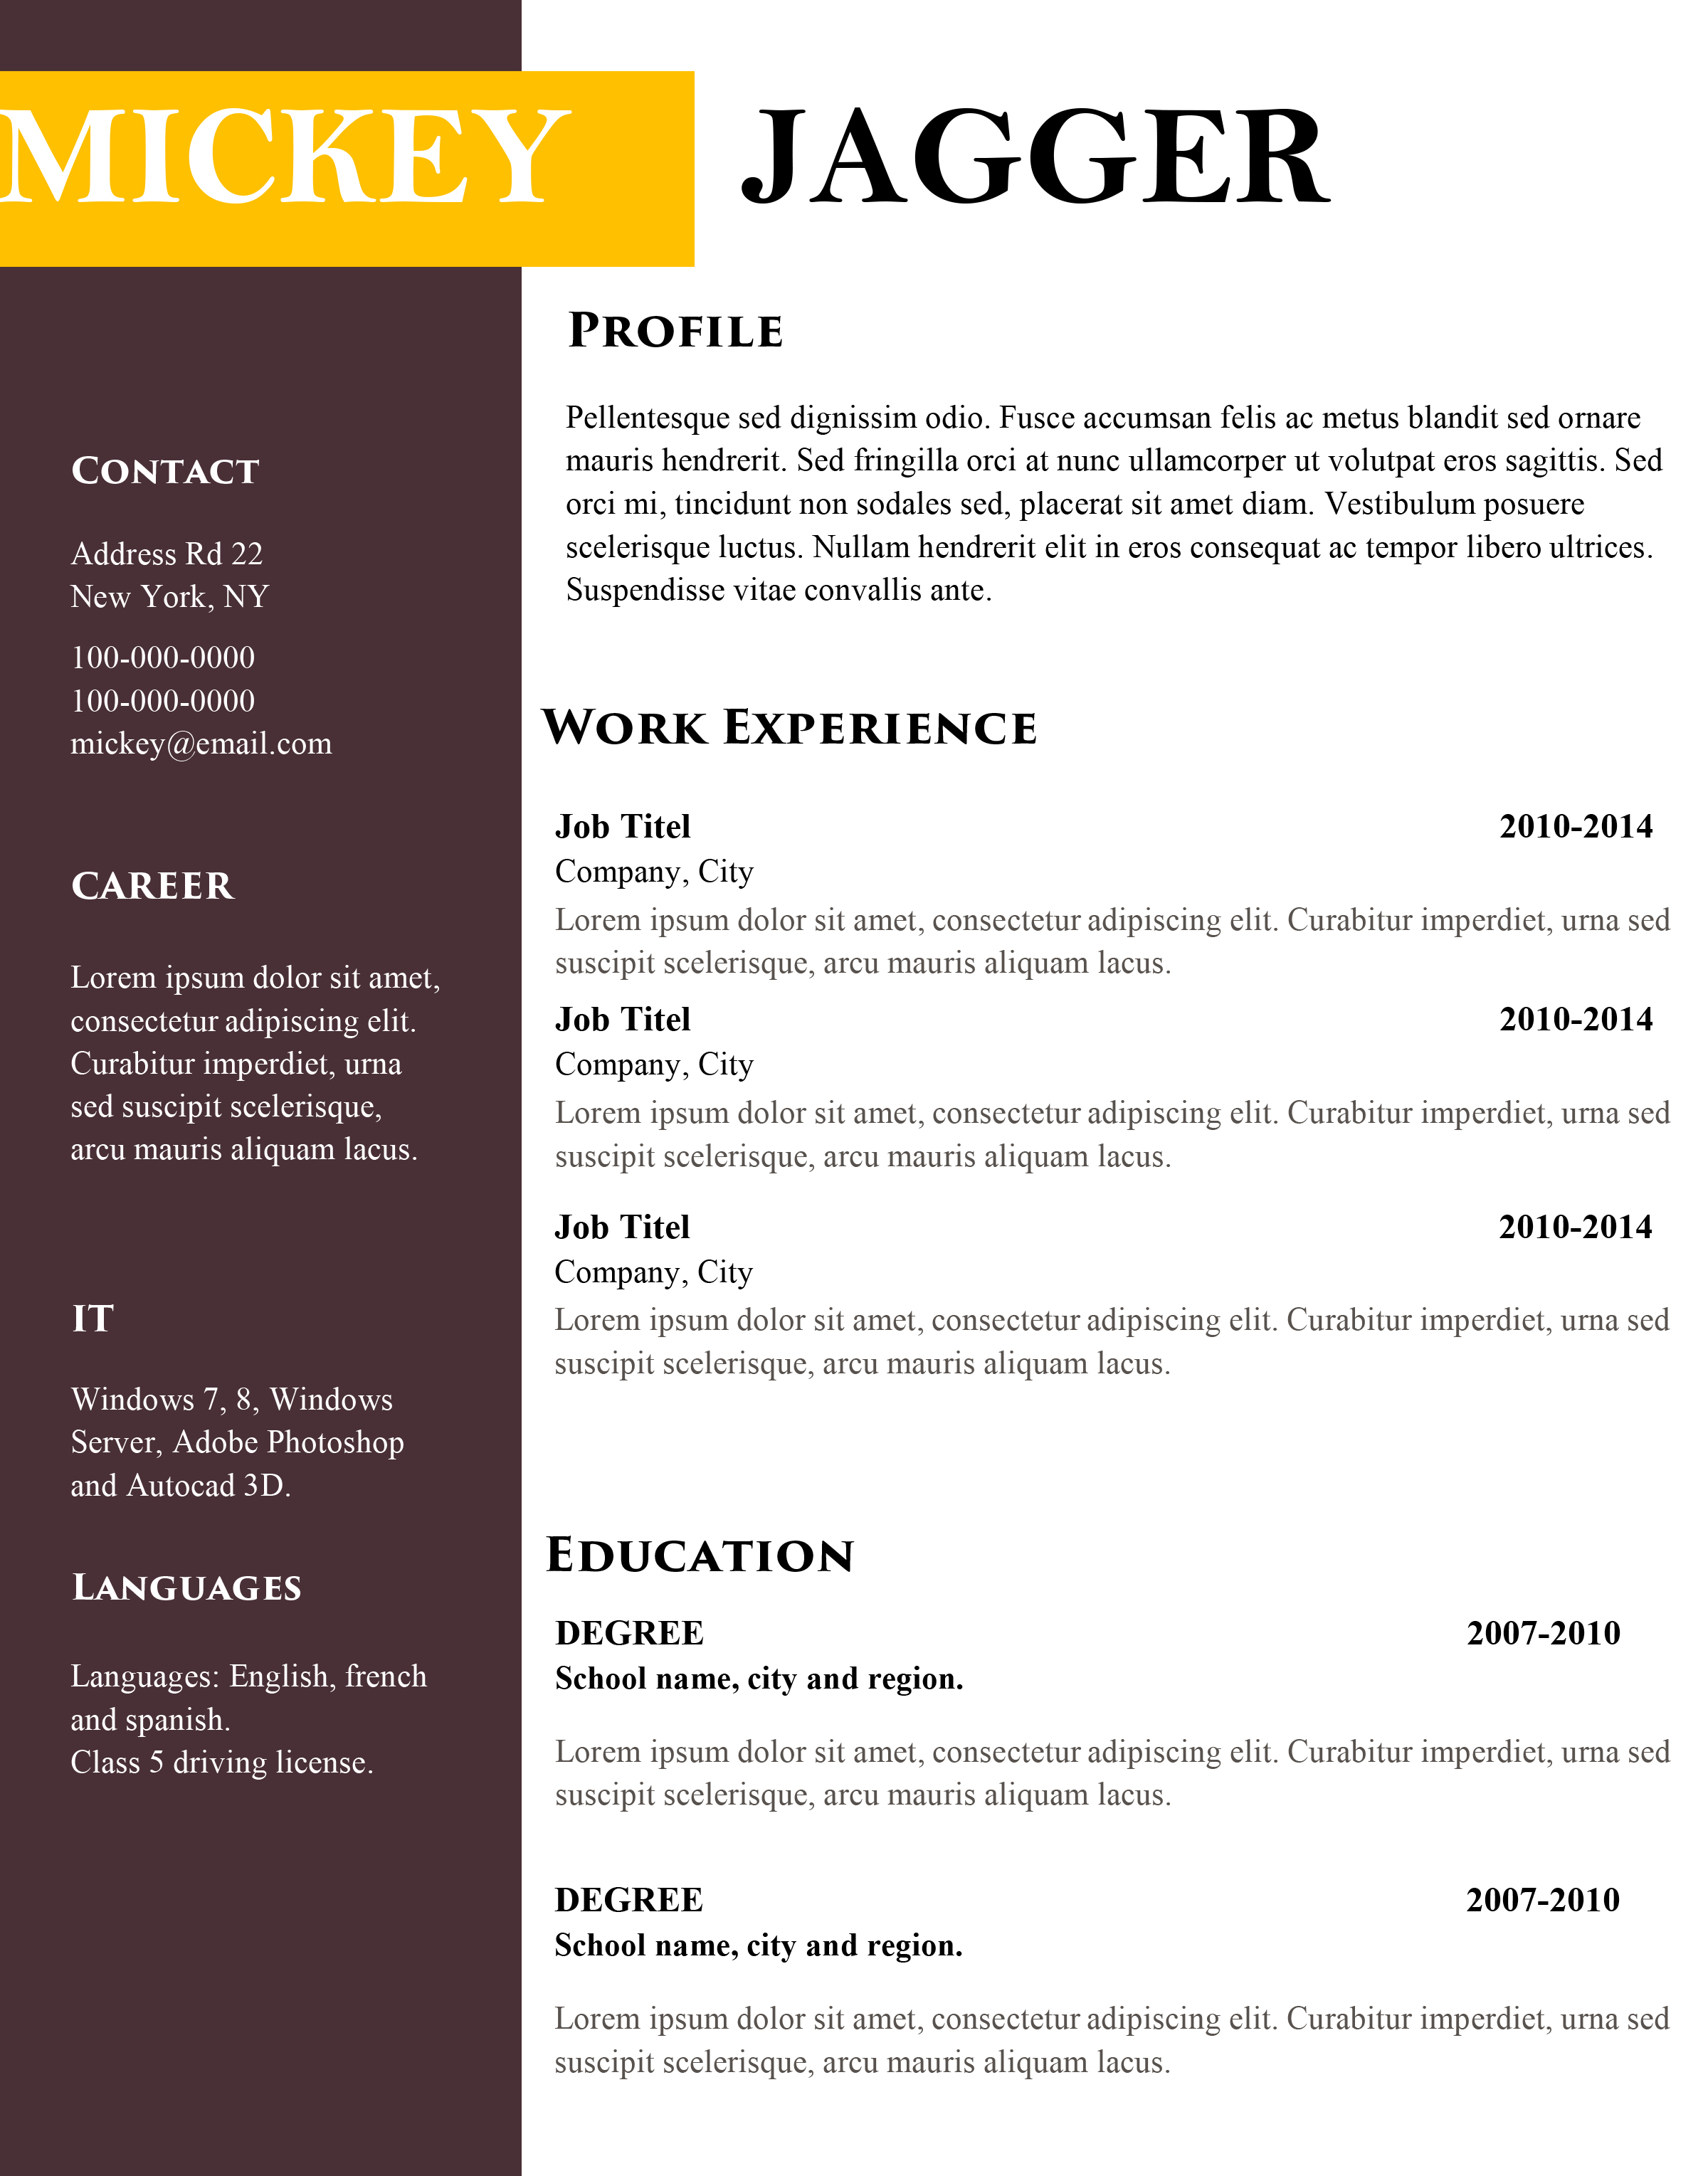 Free Modern Cv And Resume Templates Land The Job With Our Templates